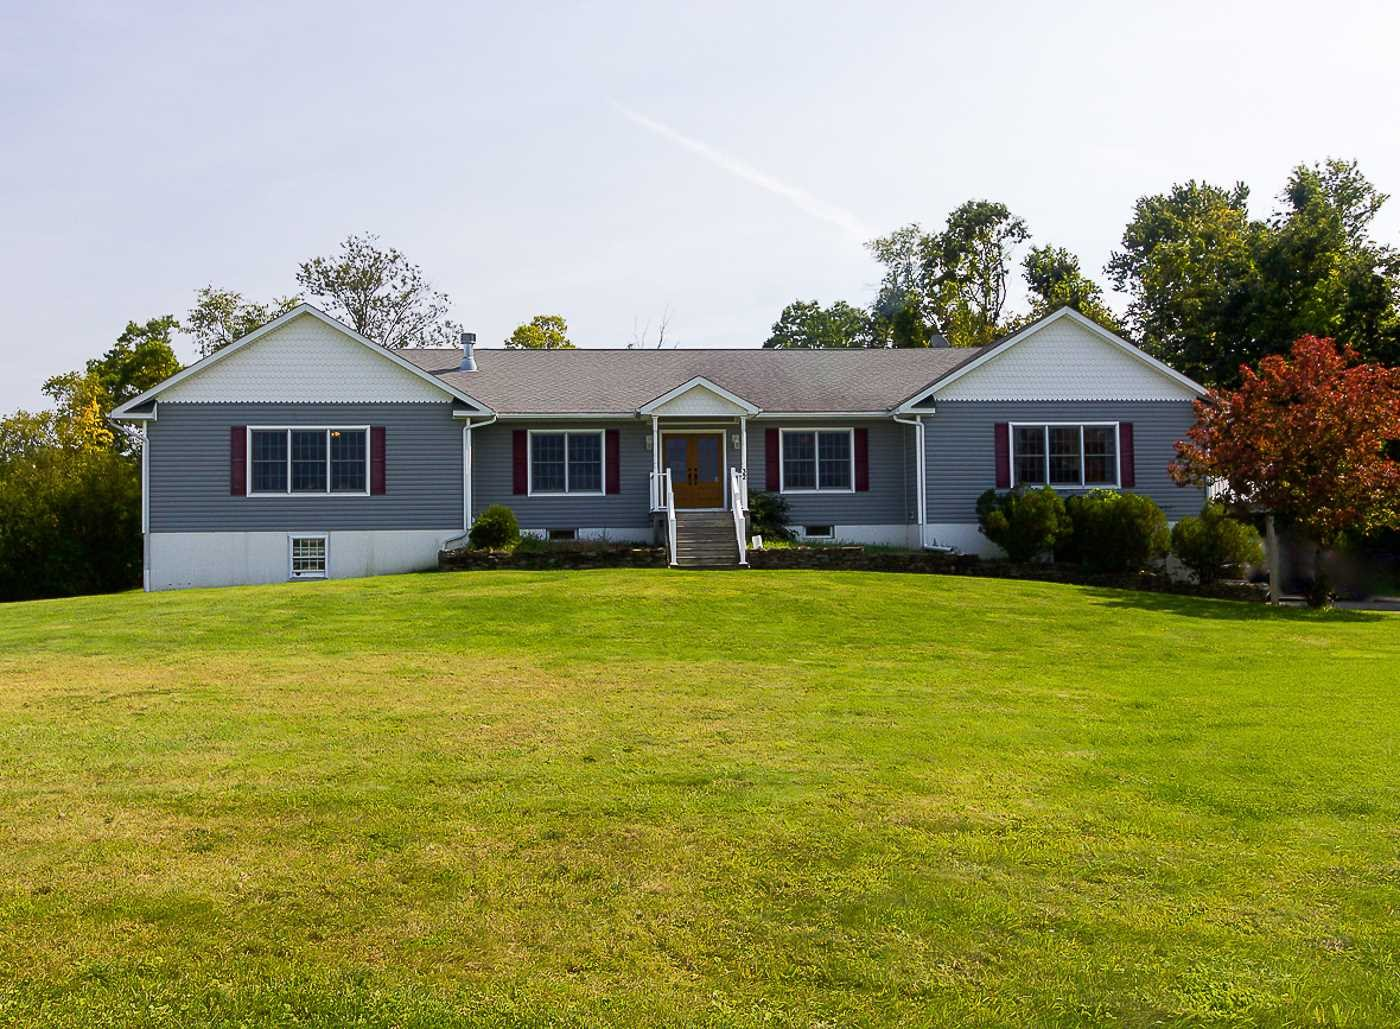 Single Family Home for Sale at 32 SCENIC HILL DRIVE 32 SCENIC HILL DRIVE Clermont, New York 12526 United States